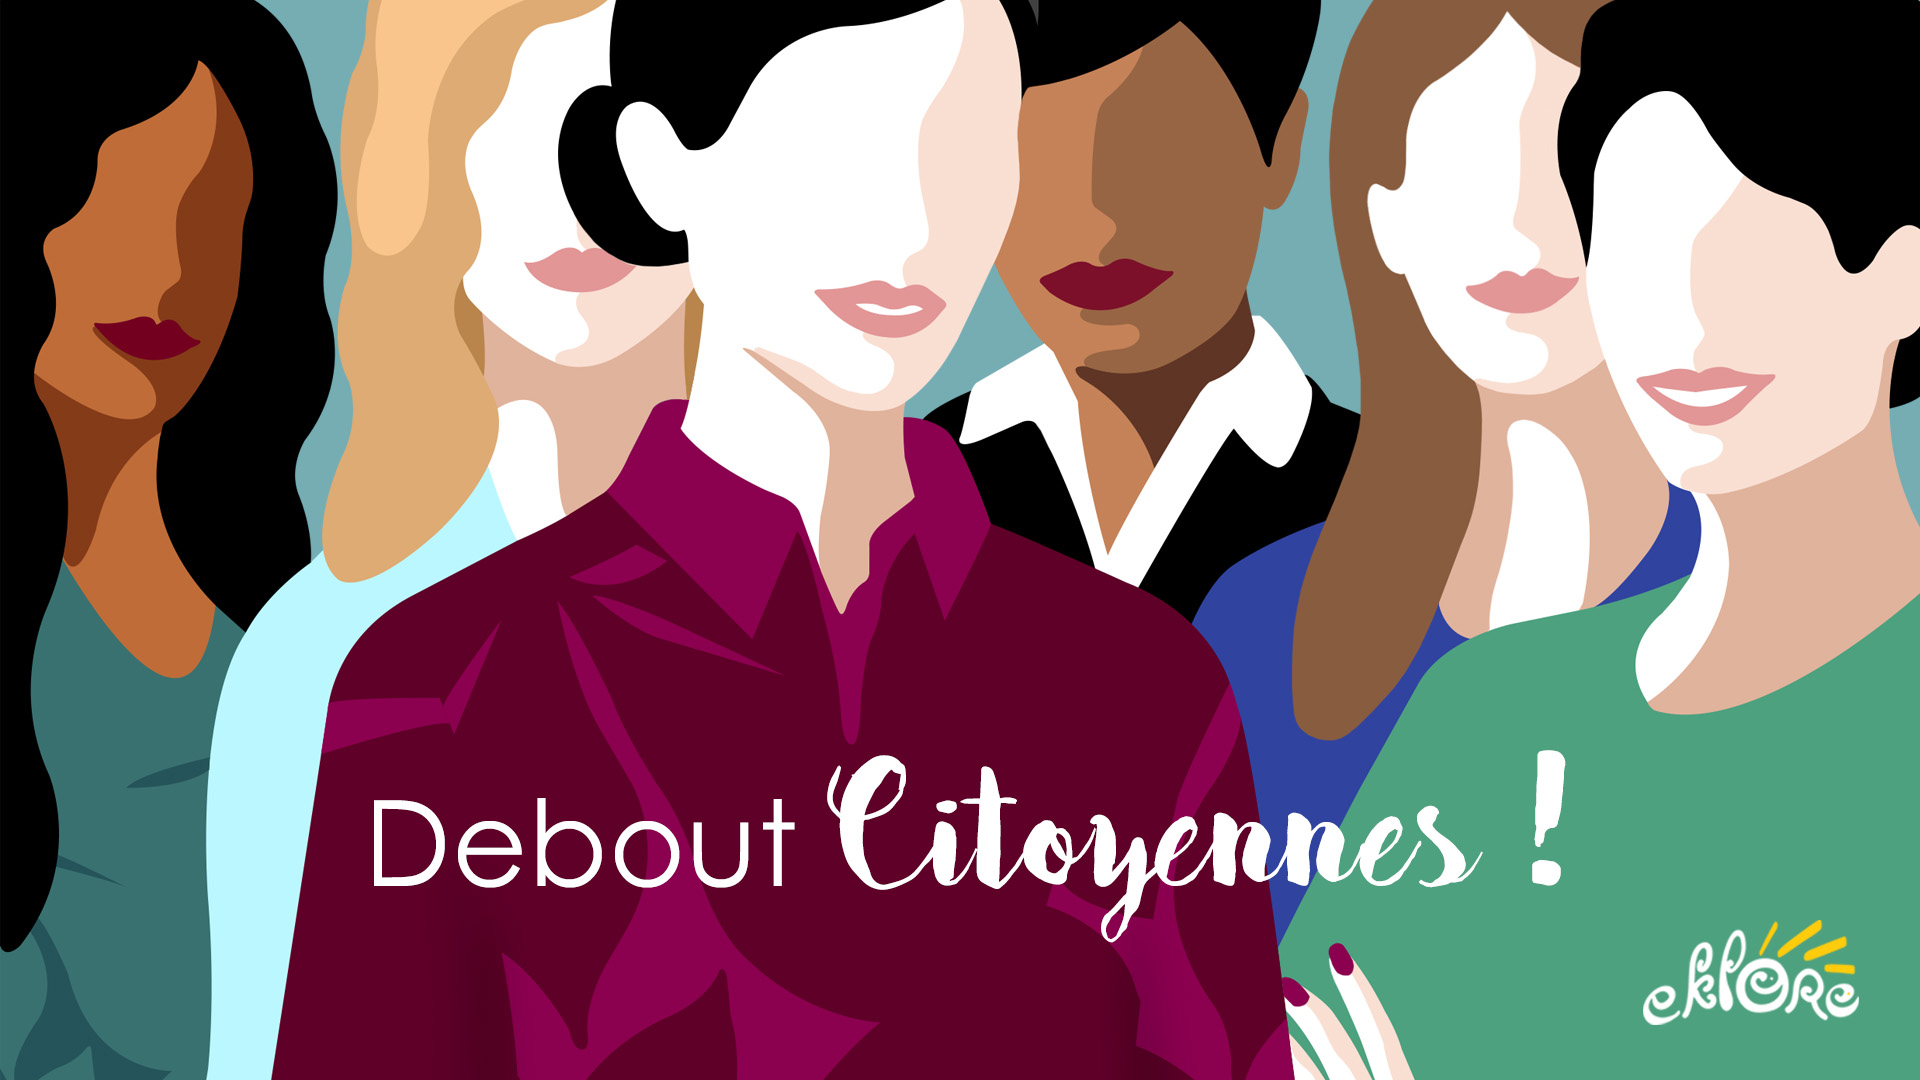 Debout Citoyennes